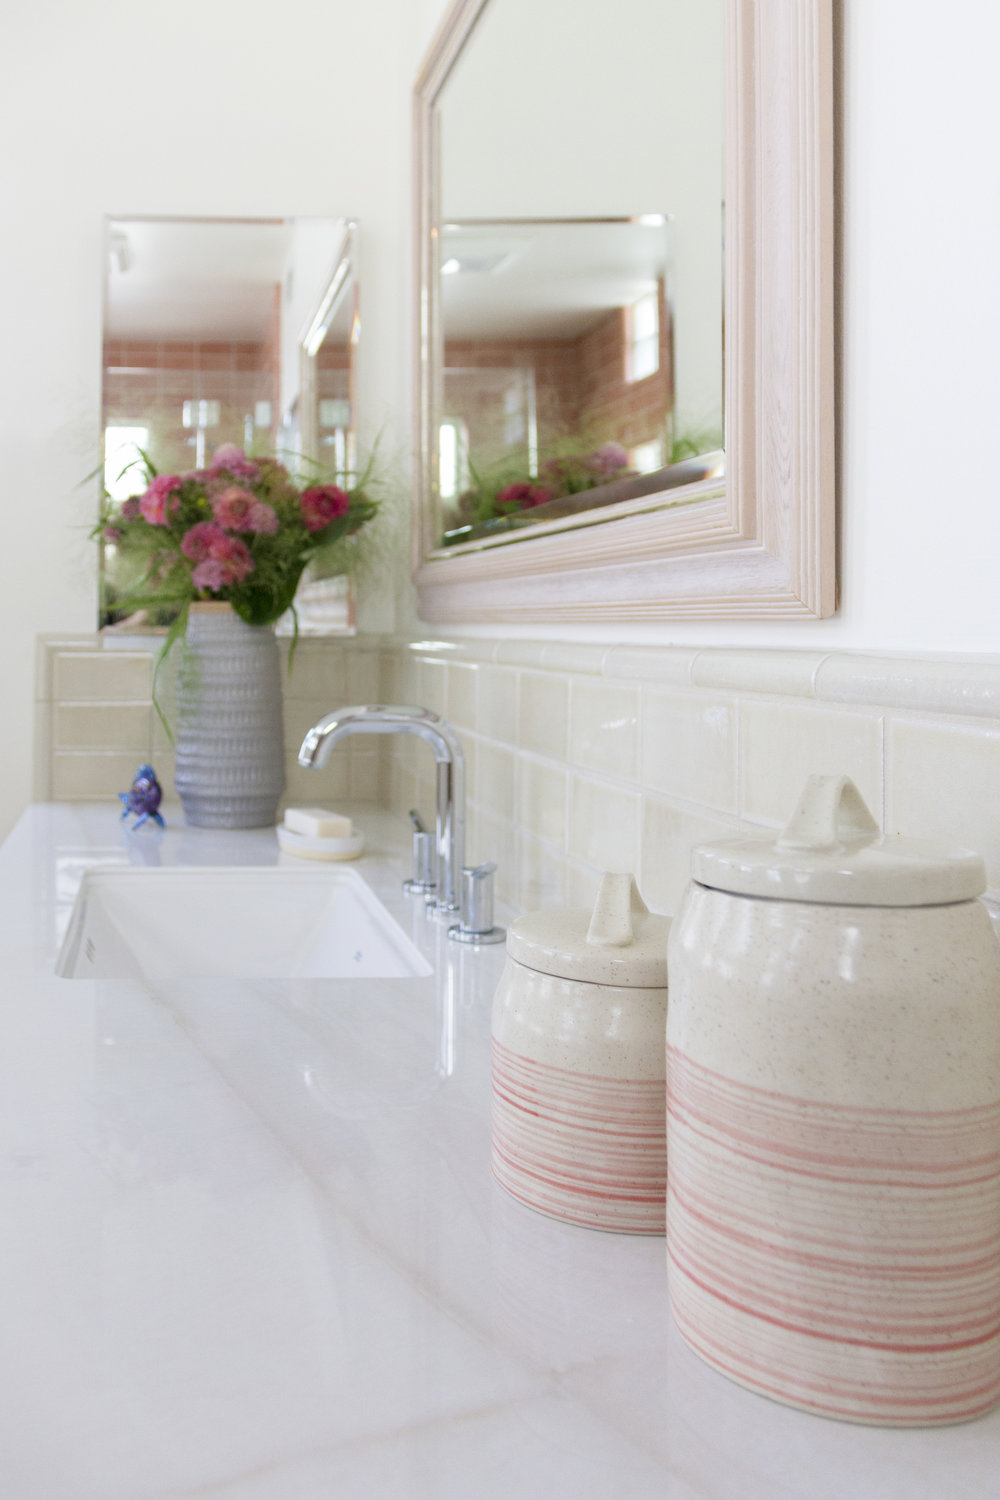 Cream and coral ceramic jars are a perfect storage solution for bathroom necessities.